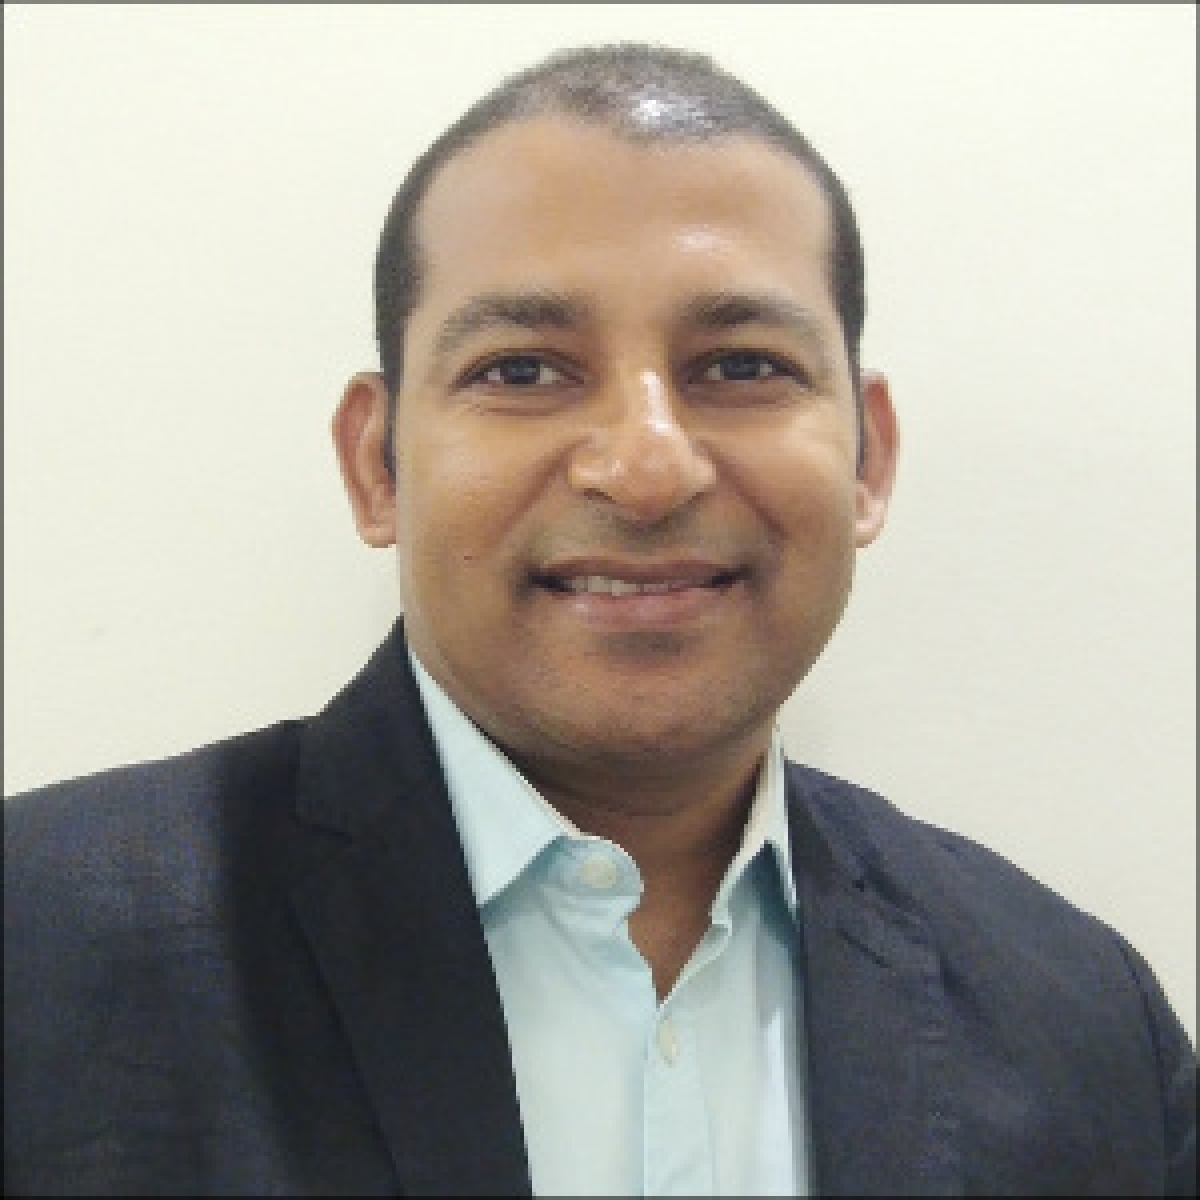 Spatial Access appoints Vineet Sodhani as Chief Executive Officer